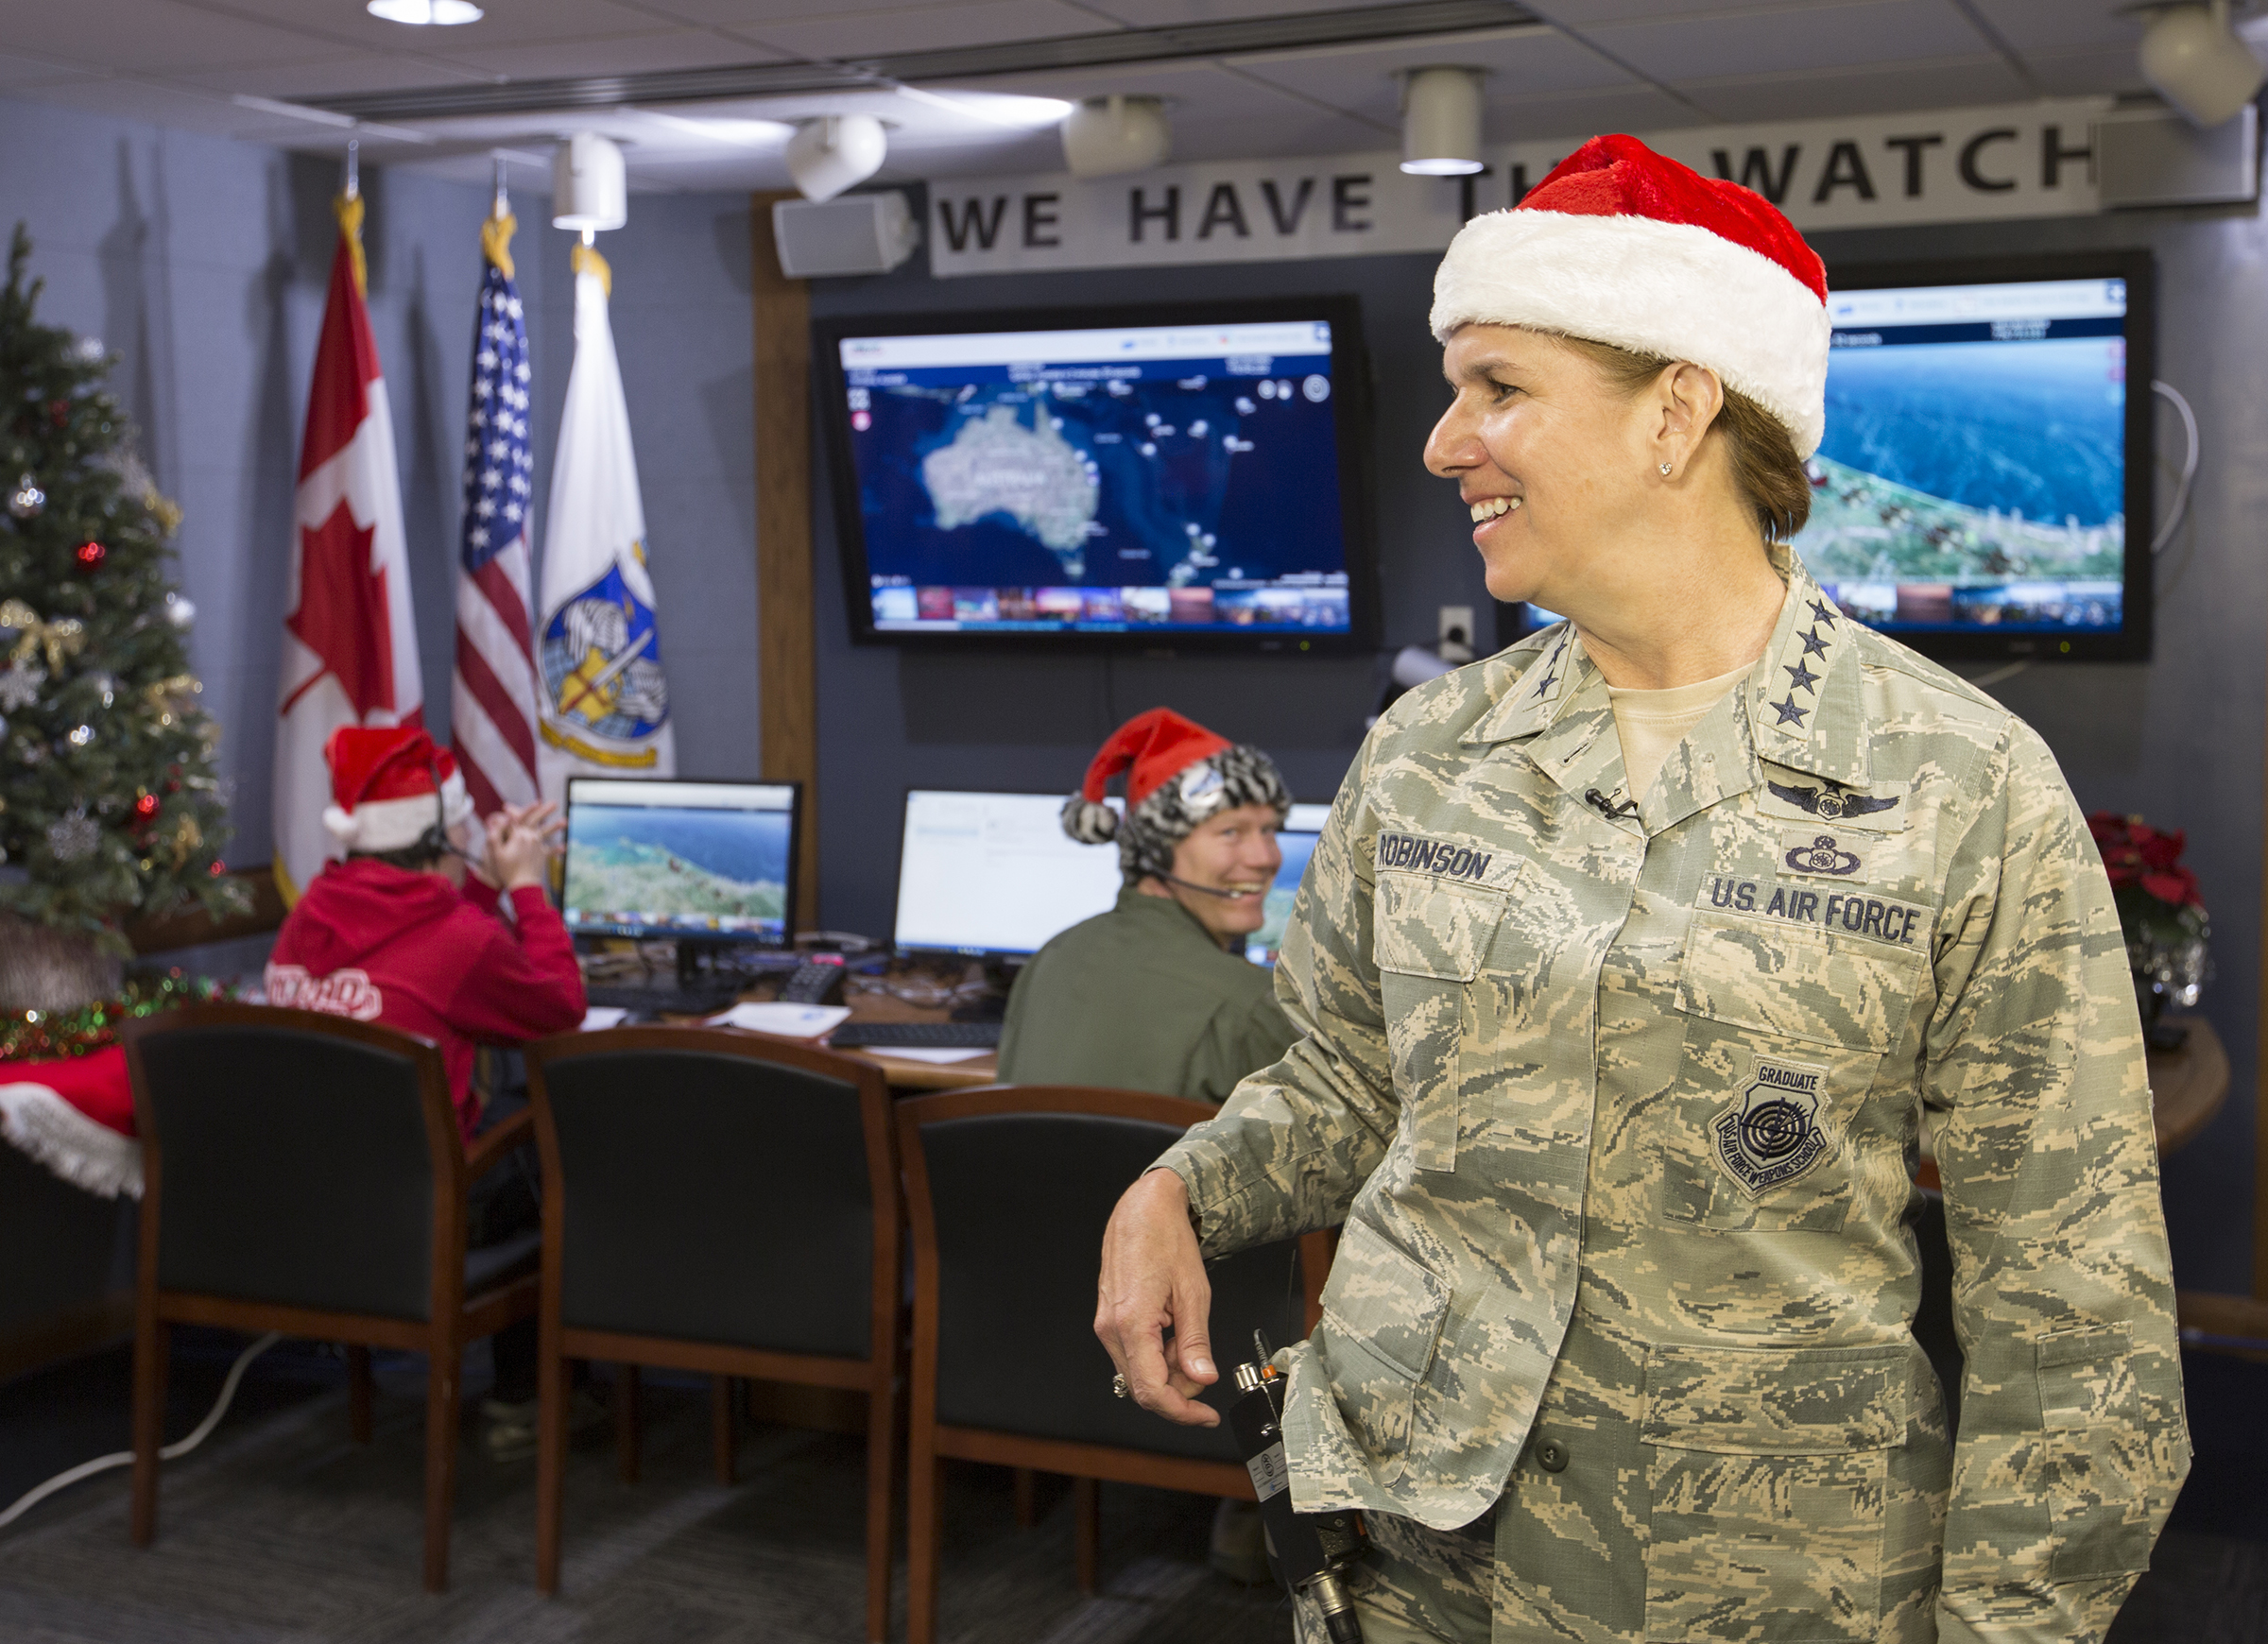 U.S. Air Force General Lori J. Robinson, the commander of North American Aerospace Defense Command and U.S. Northern Command, gives a national media interview during the 2016 NORAD Tracks Santa event at Peterson Air Force Base in Colorado on December 24, 2016. PHOTO: Dennis Carlyle, NORAD, 61224-F-CN249-094